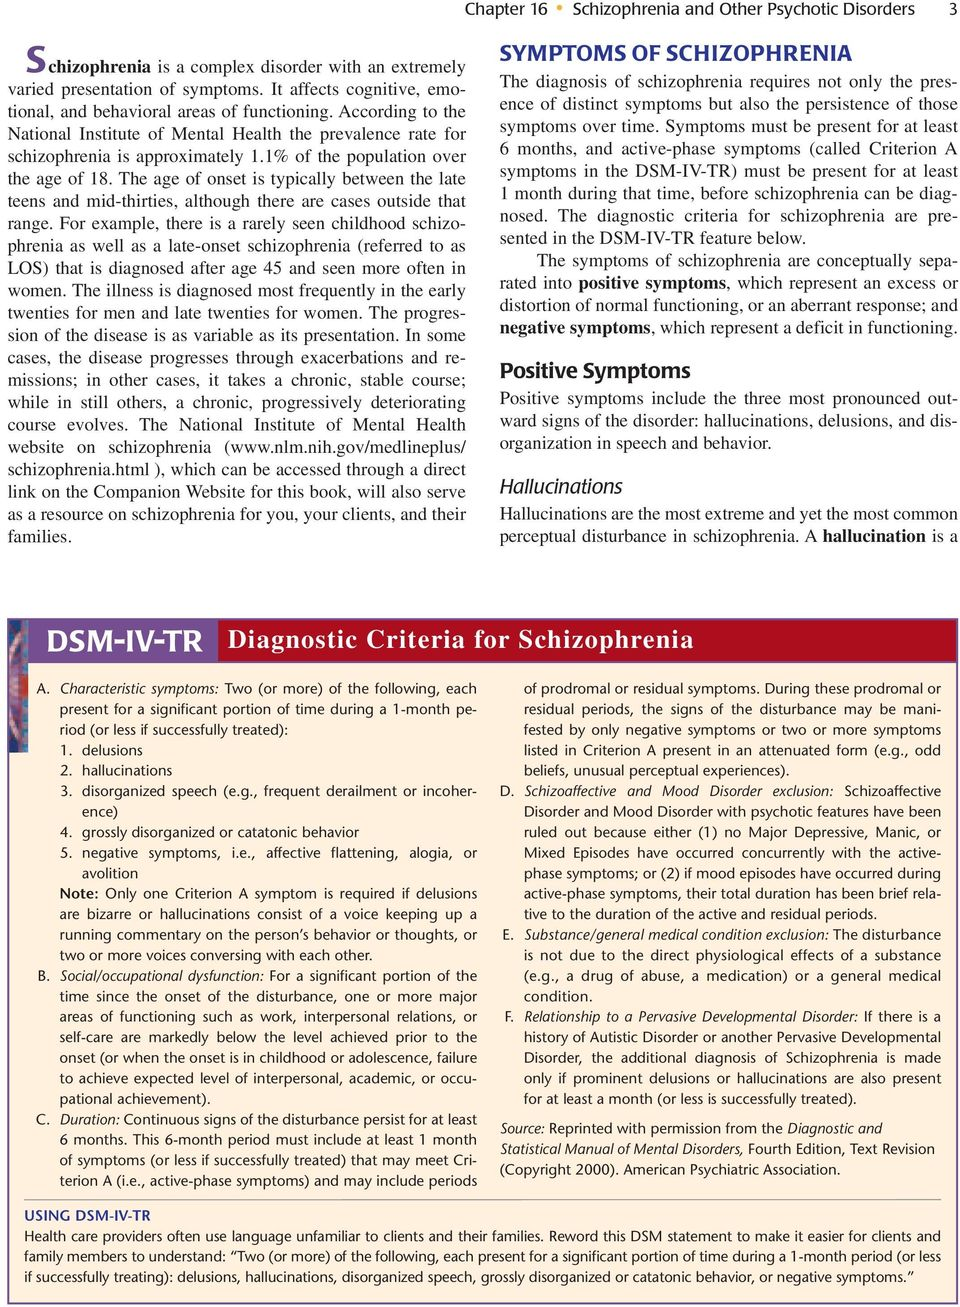 Schizophrenia and Other Psychotic Disorders - PDF